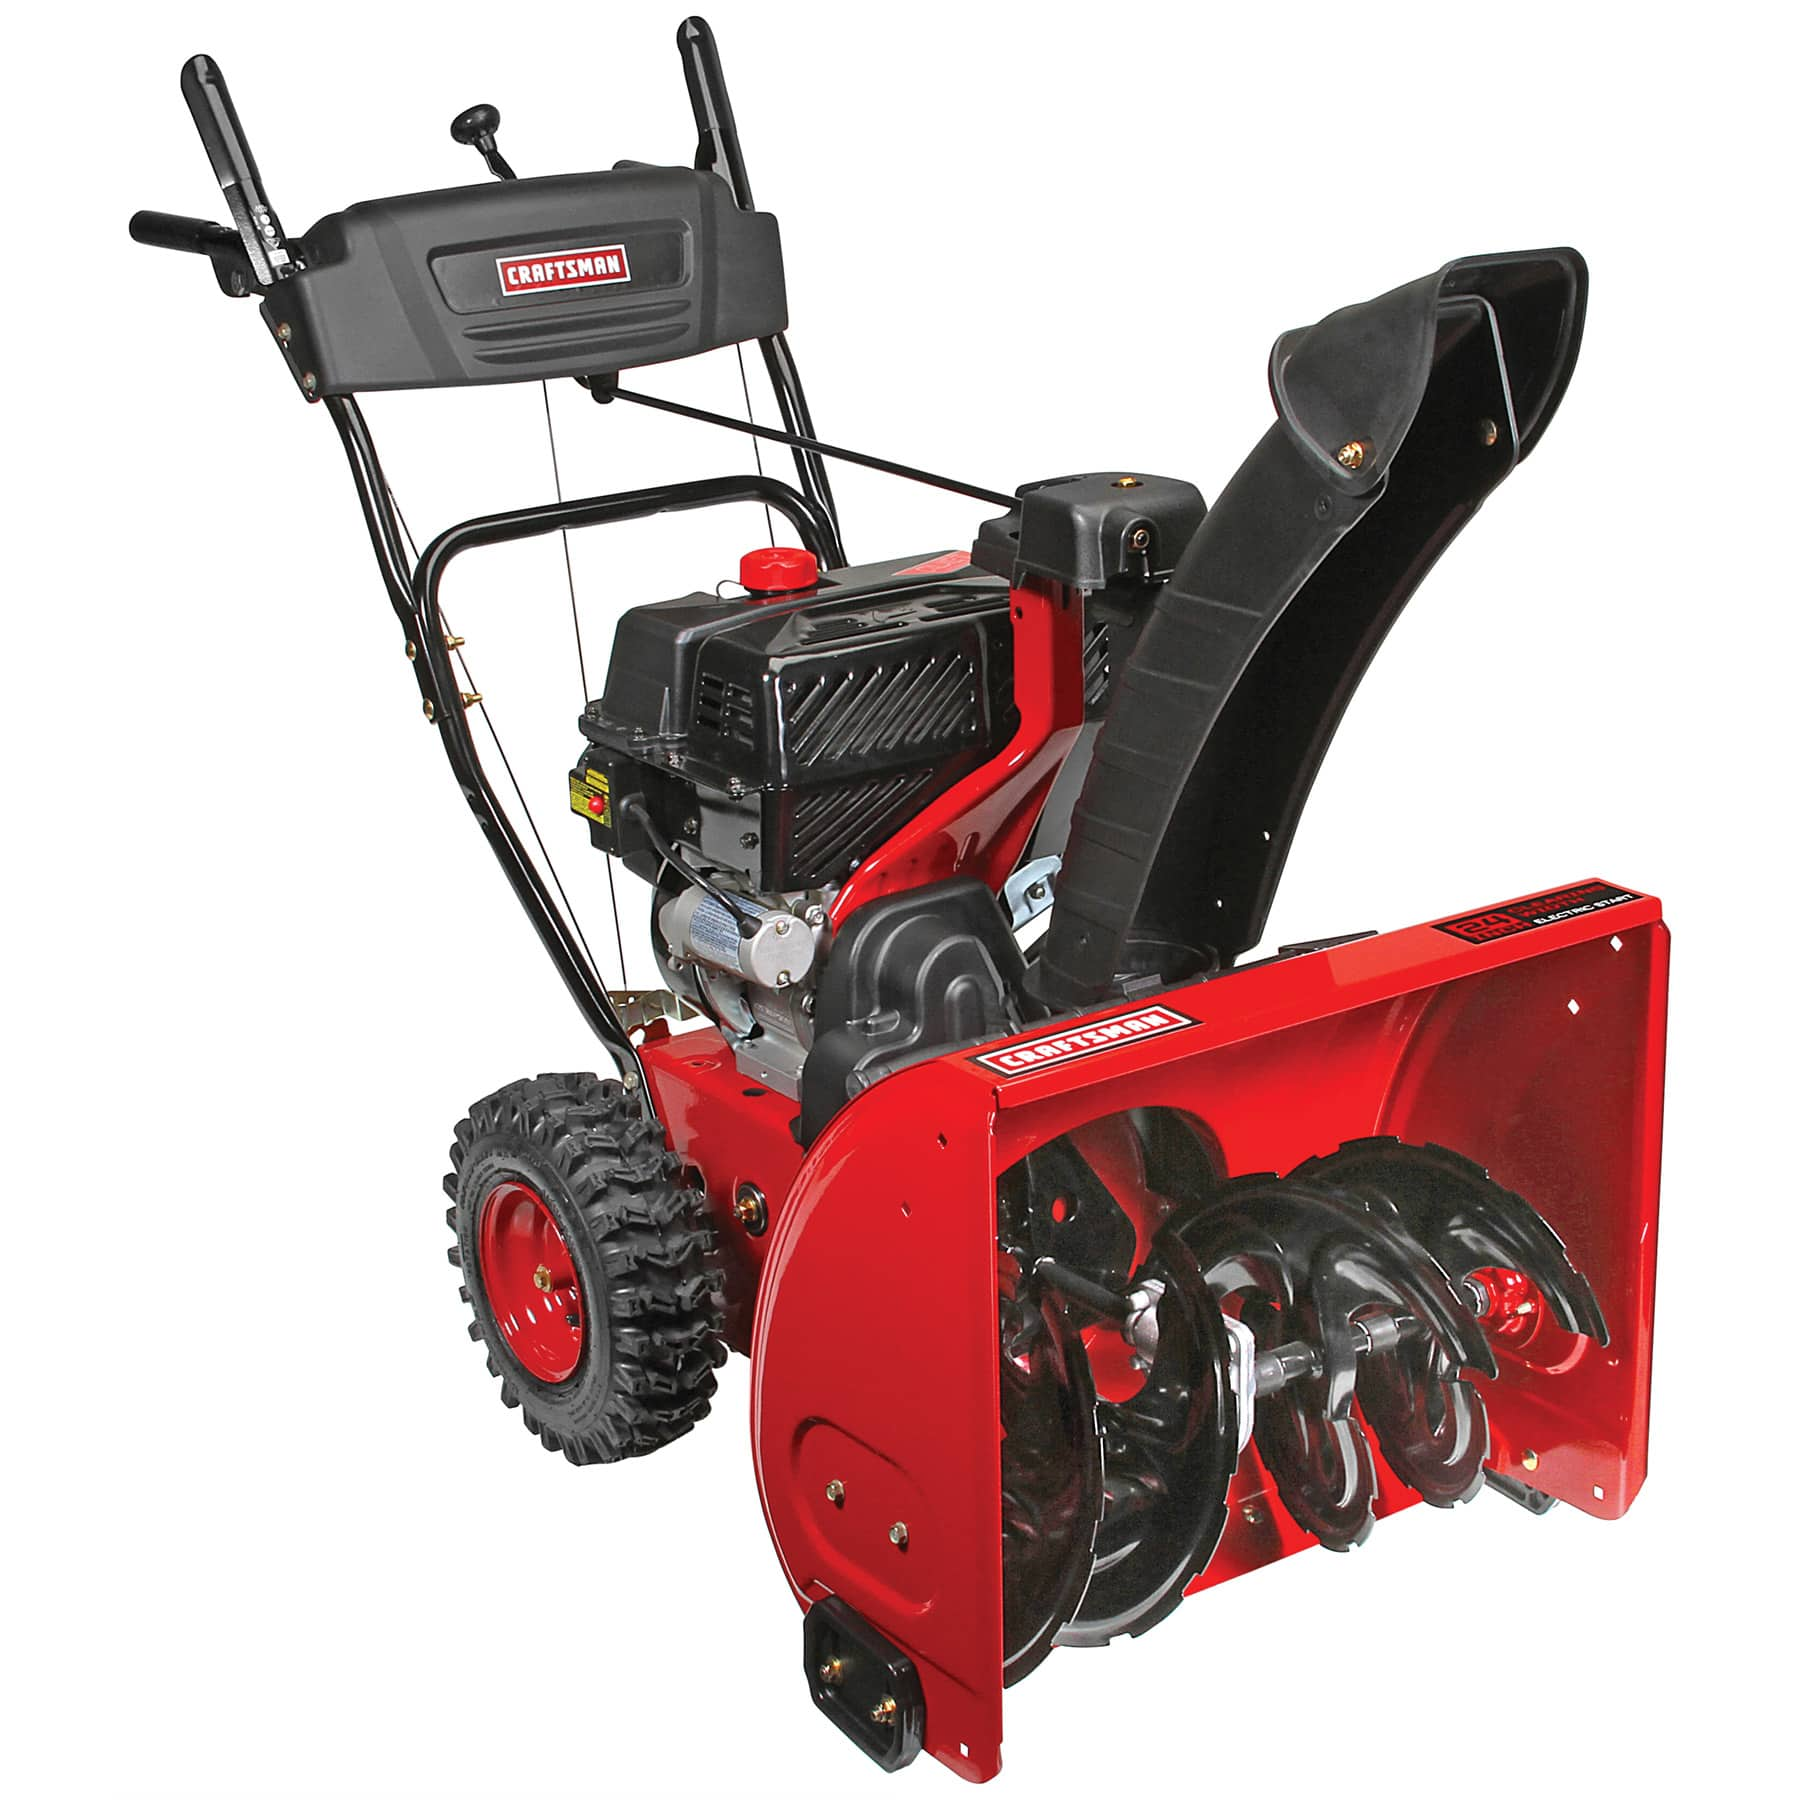 """Sears Craftsman 208CC 24"""" quiet 2 stage snowblower $421.99 free pickup $100 back in SYW points and others"""